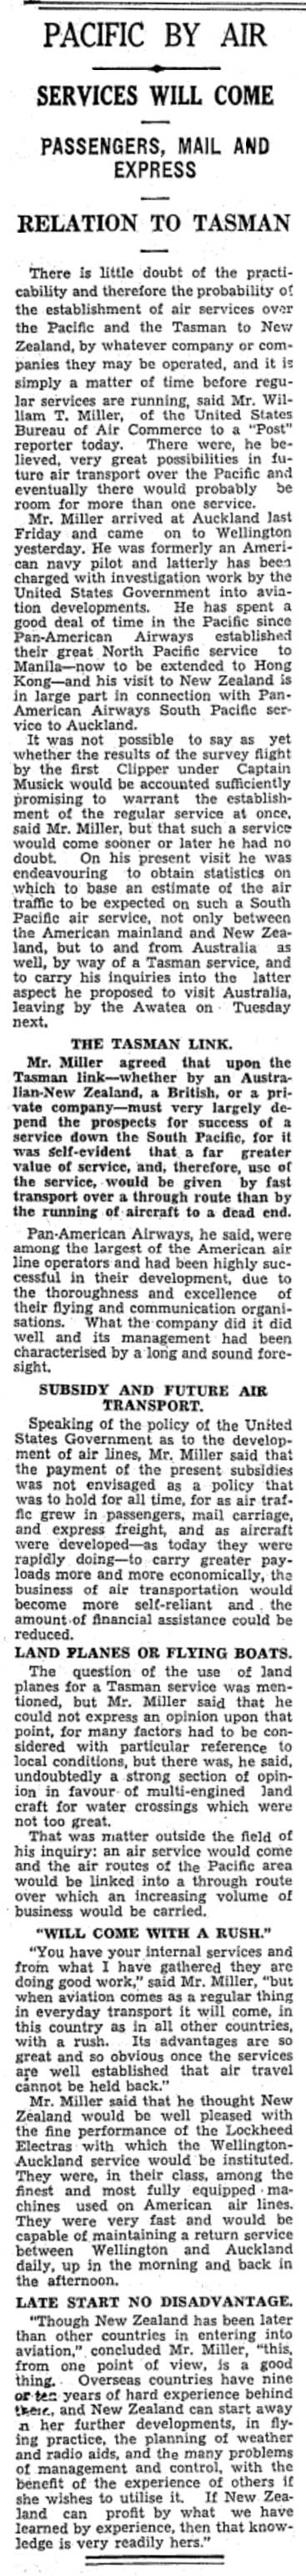 Pacific Air Service Will Come, Evening Post, 22 April 1937